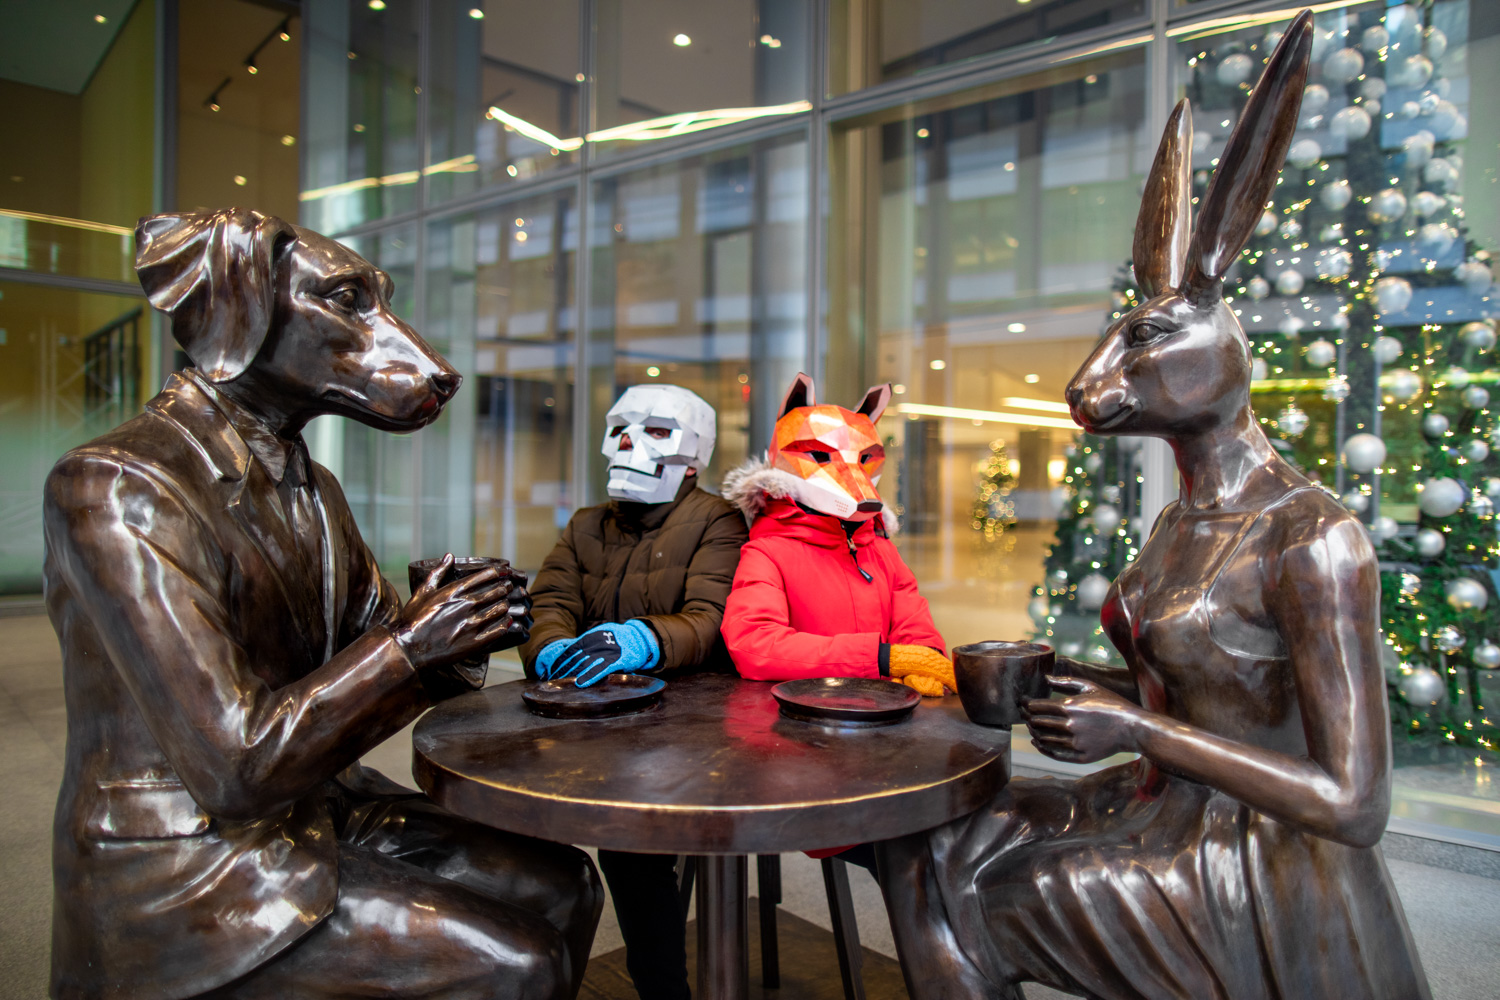 Posing in front of Gillie and Marc's Rabbitwoman and Dogman art installation in New York City.